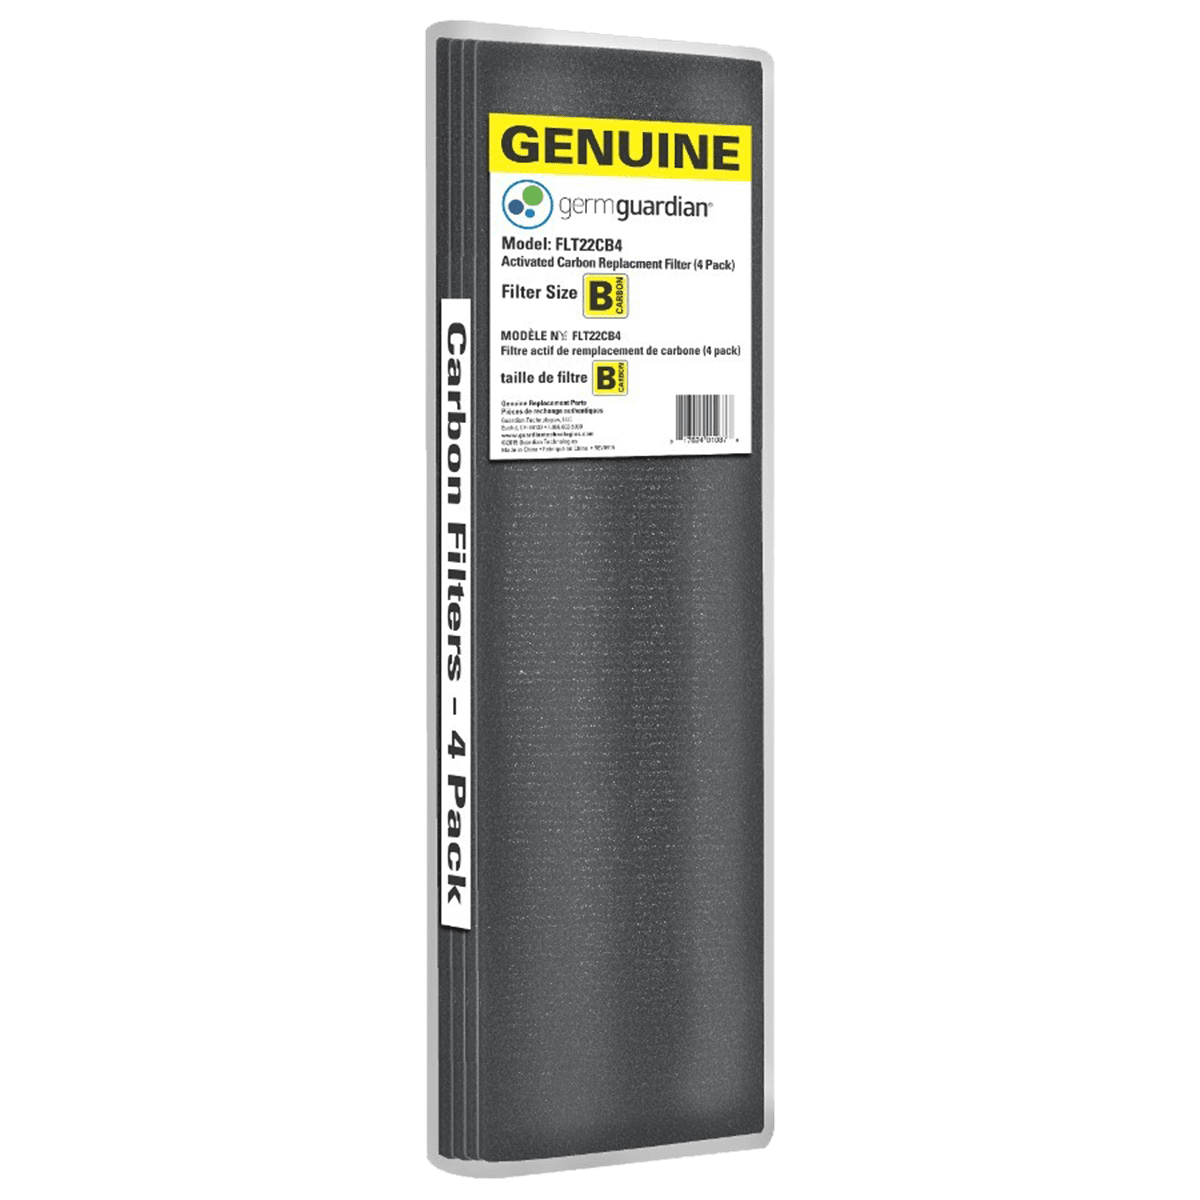 GermGuardian 4-Pack Carbon Filters for 22-Inch Air Purifiers ge7104